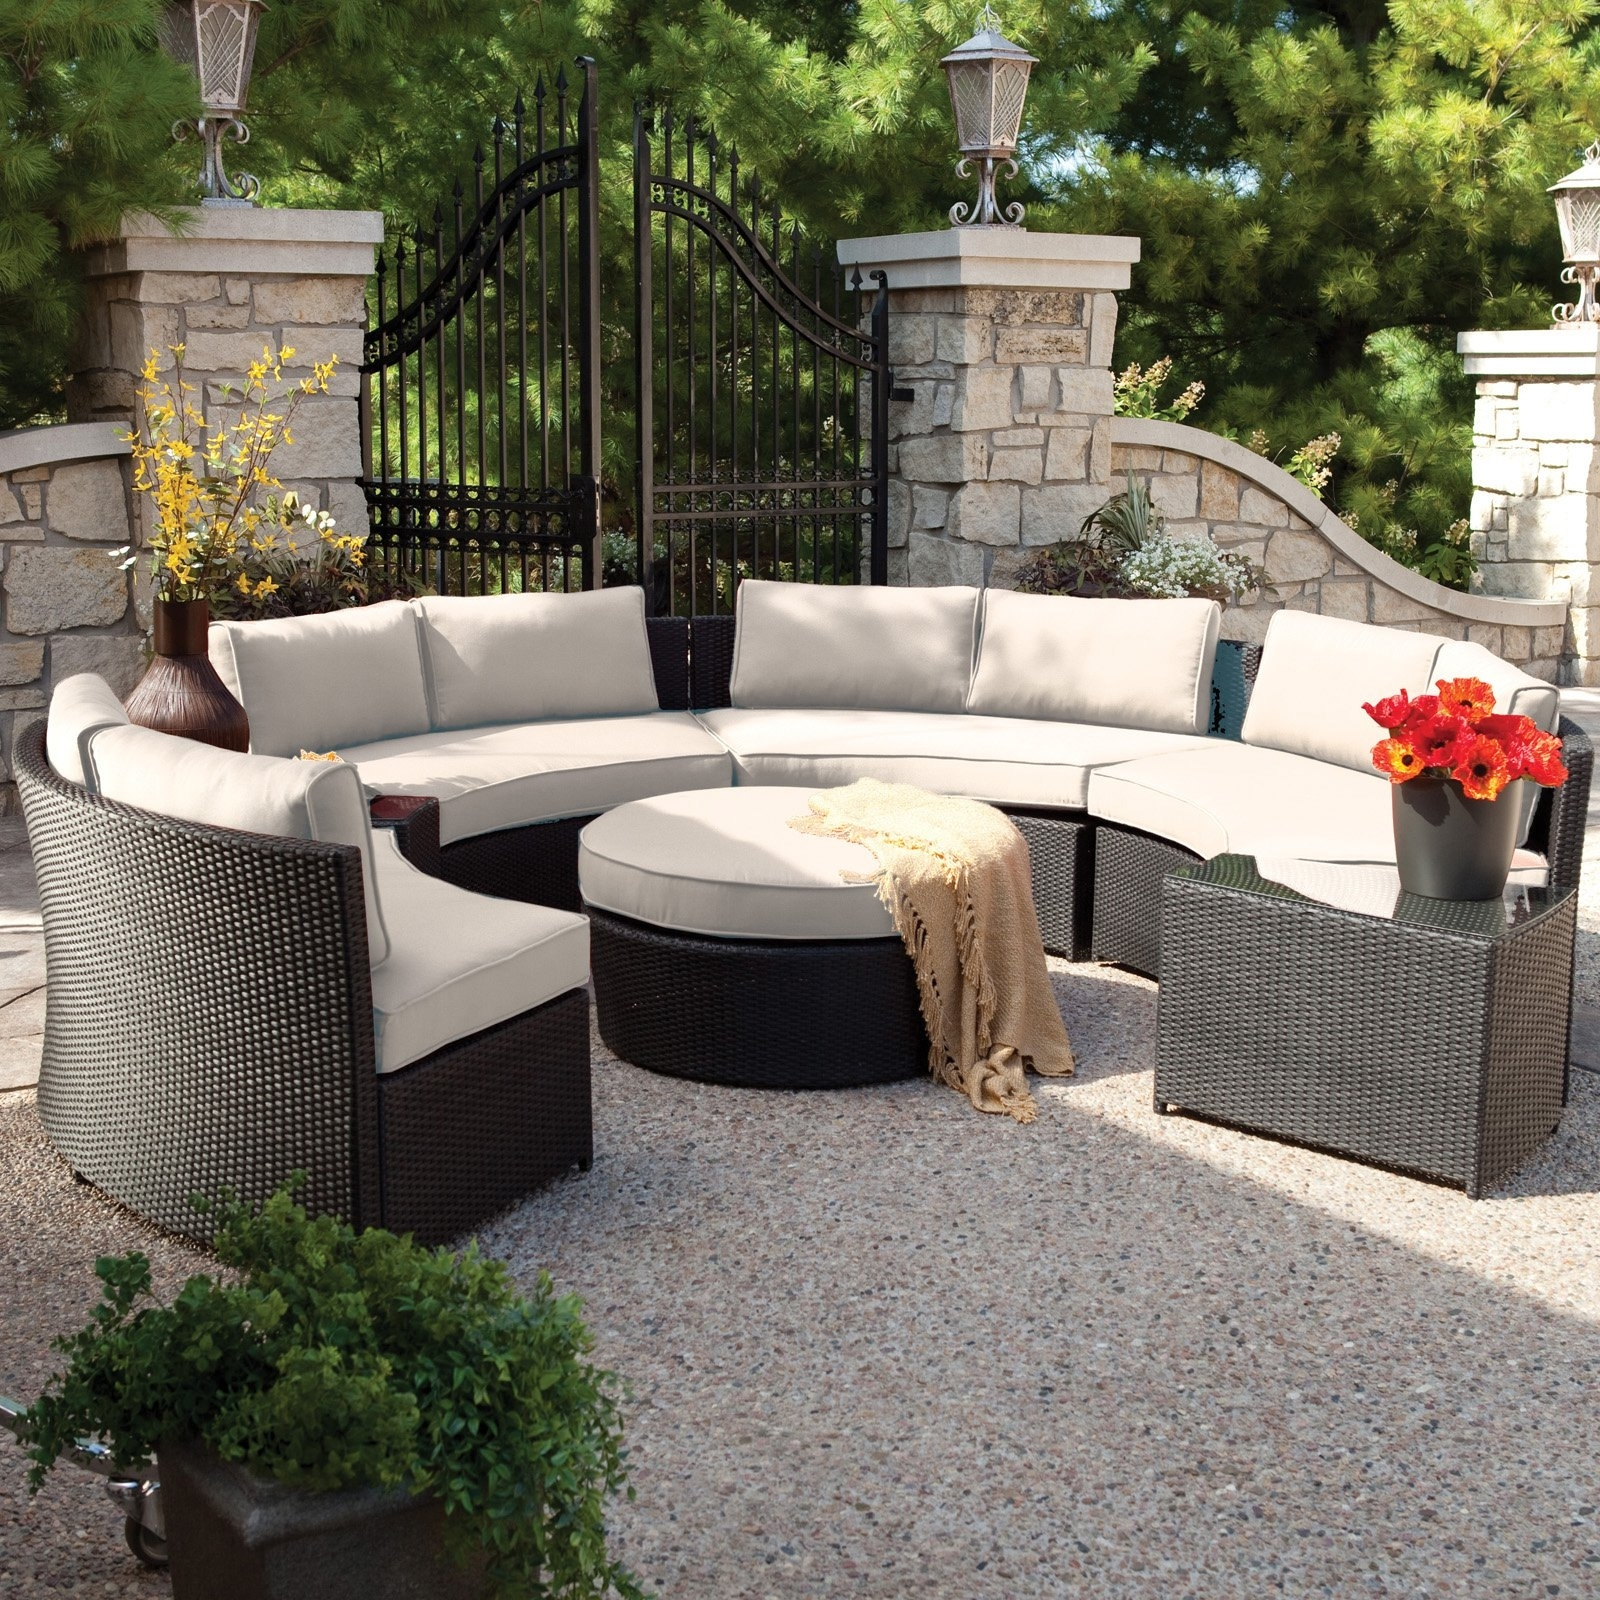 2020 Popular Outdoor Sofas And Chairs - Outdoor Wicker Furniture Clearance Nz